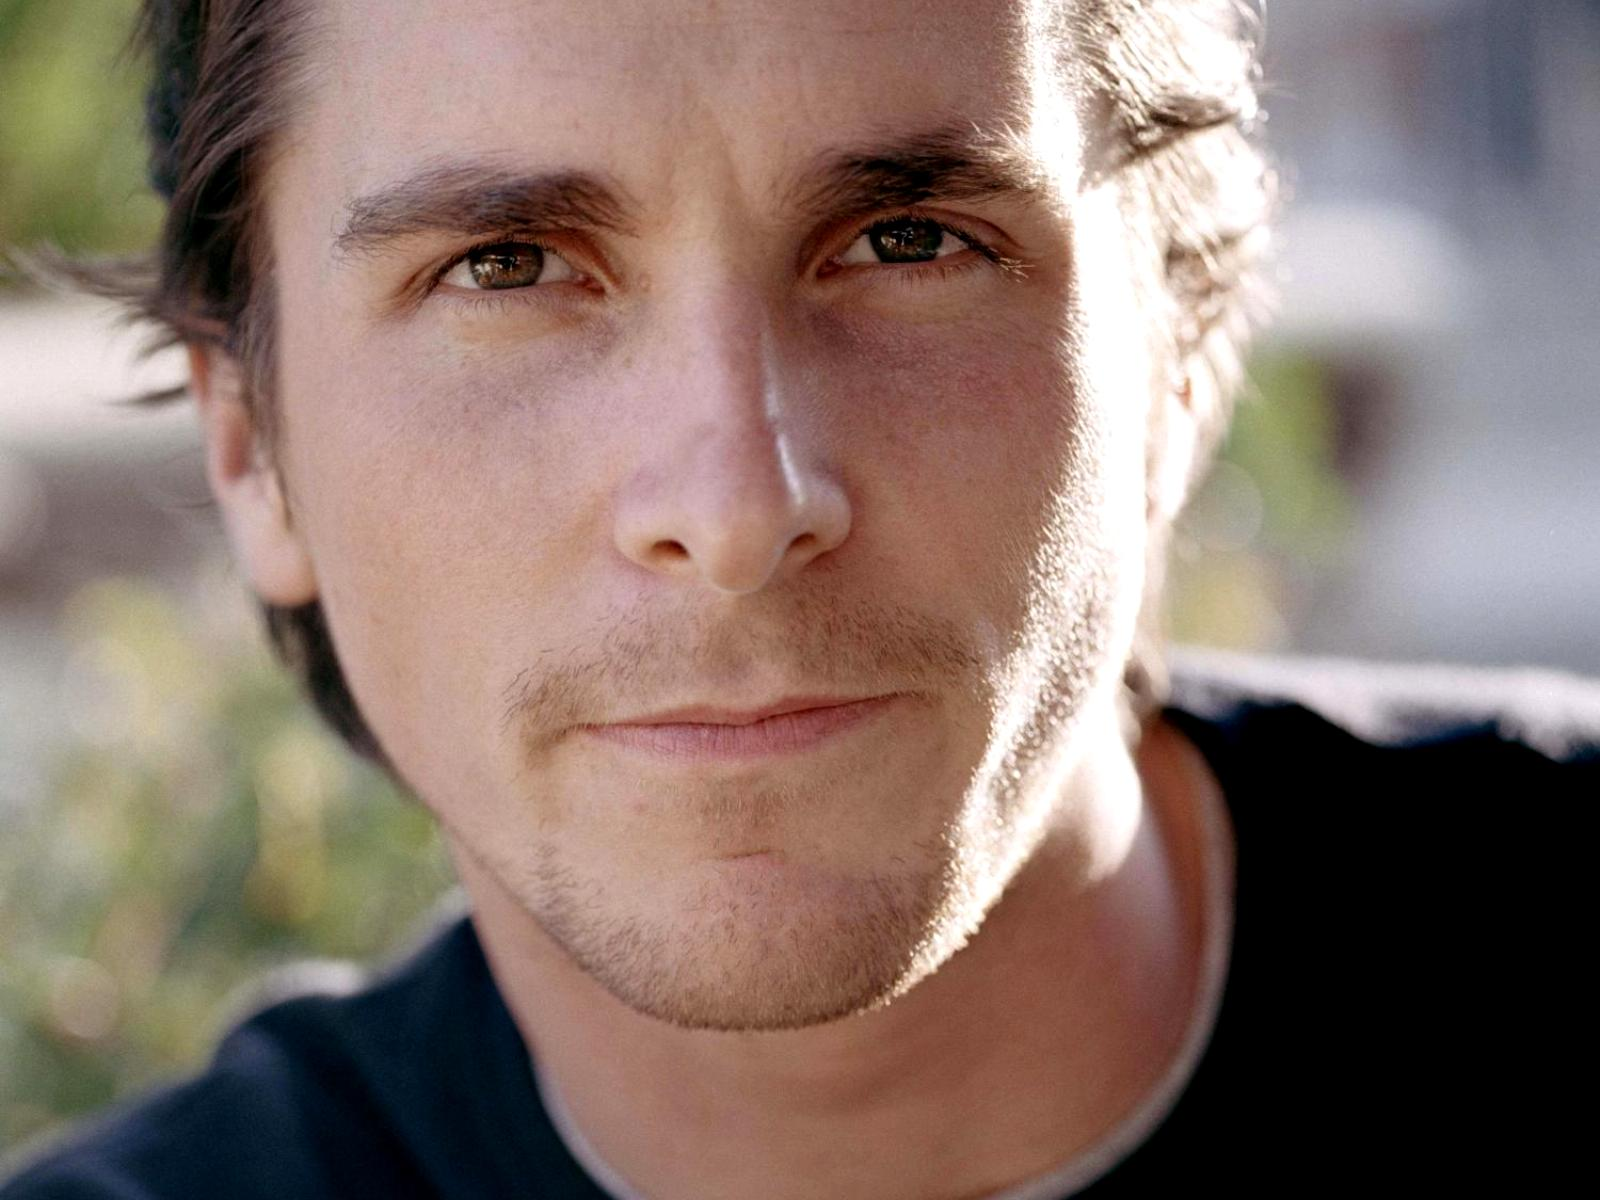 Christian Bale: Christian Bale Wallpapers High Resolution And Quality Download